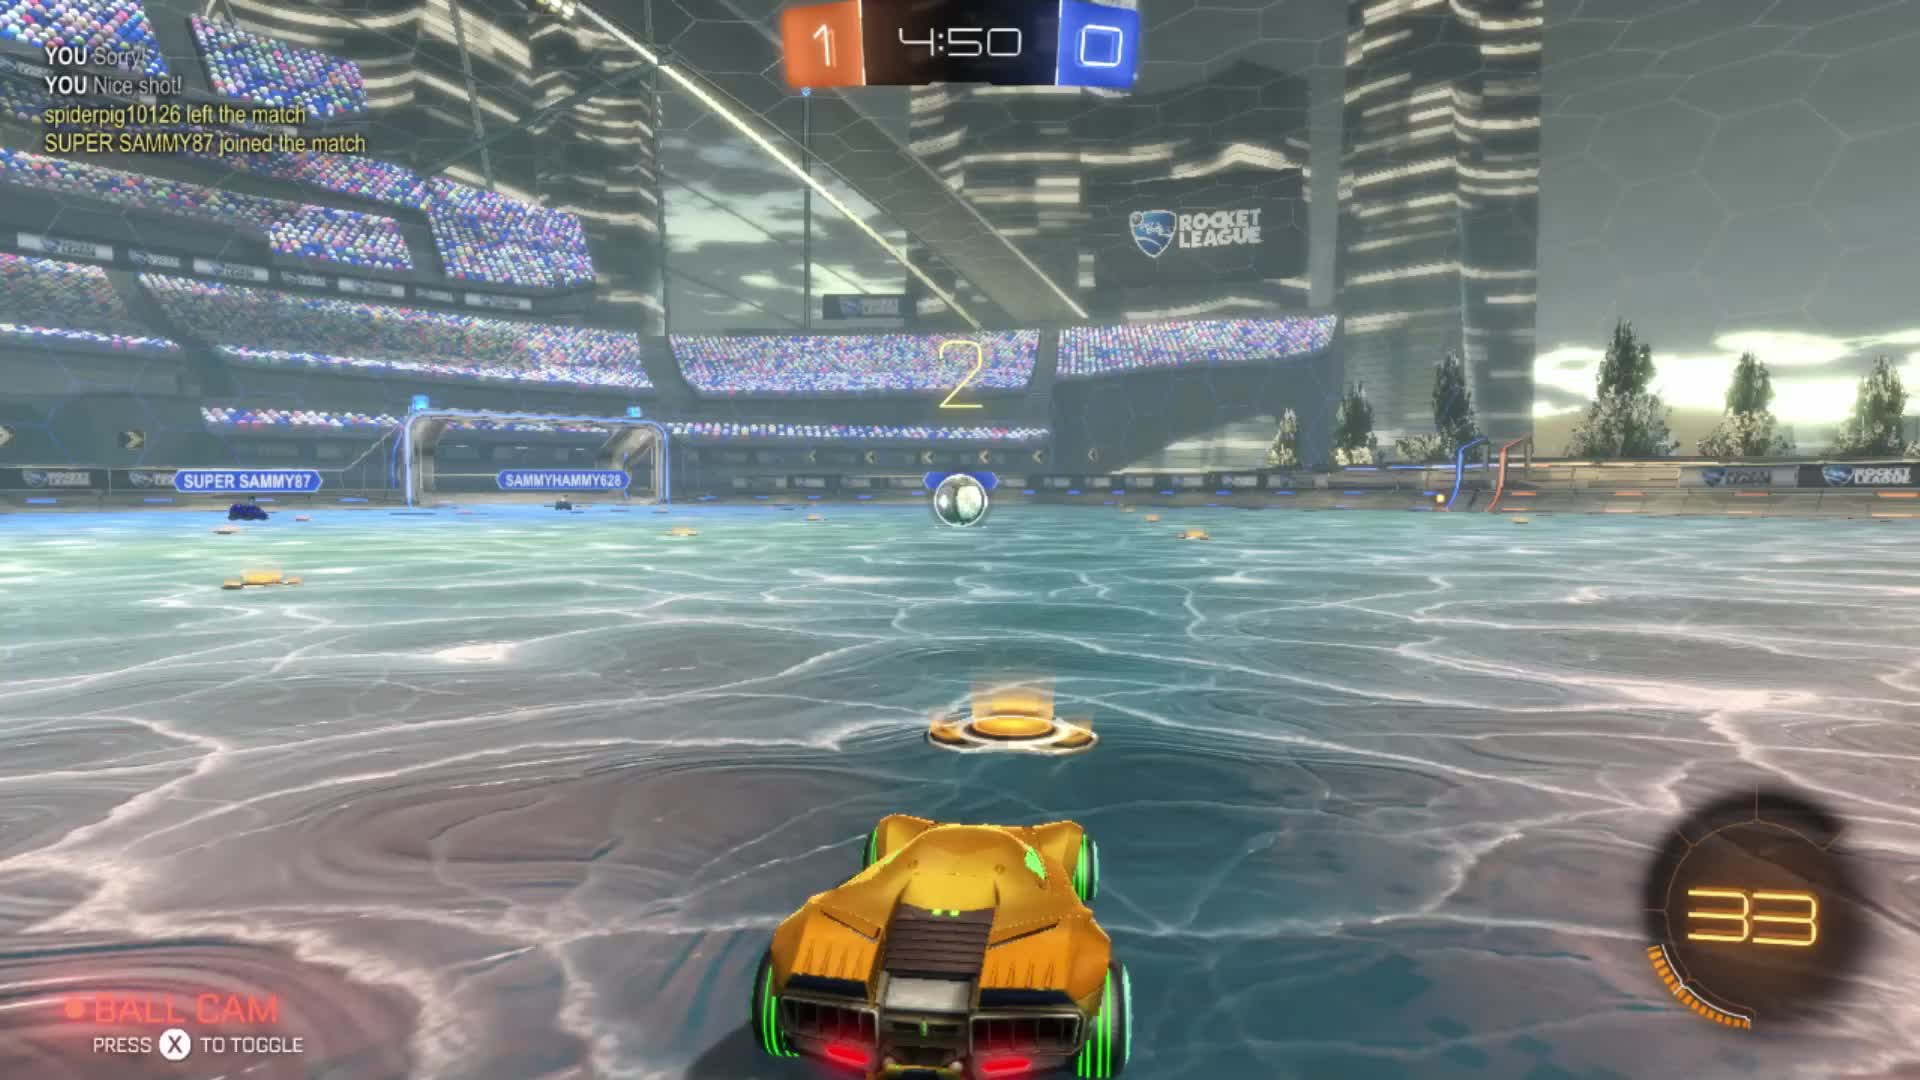 Rocket League on Switch GIFs